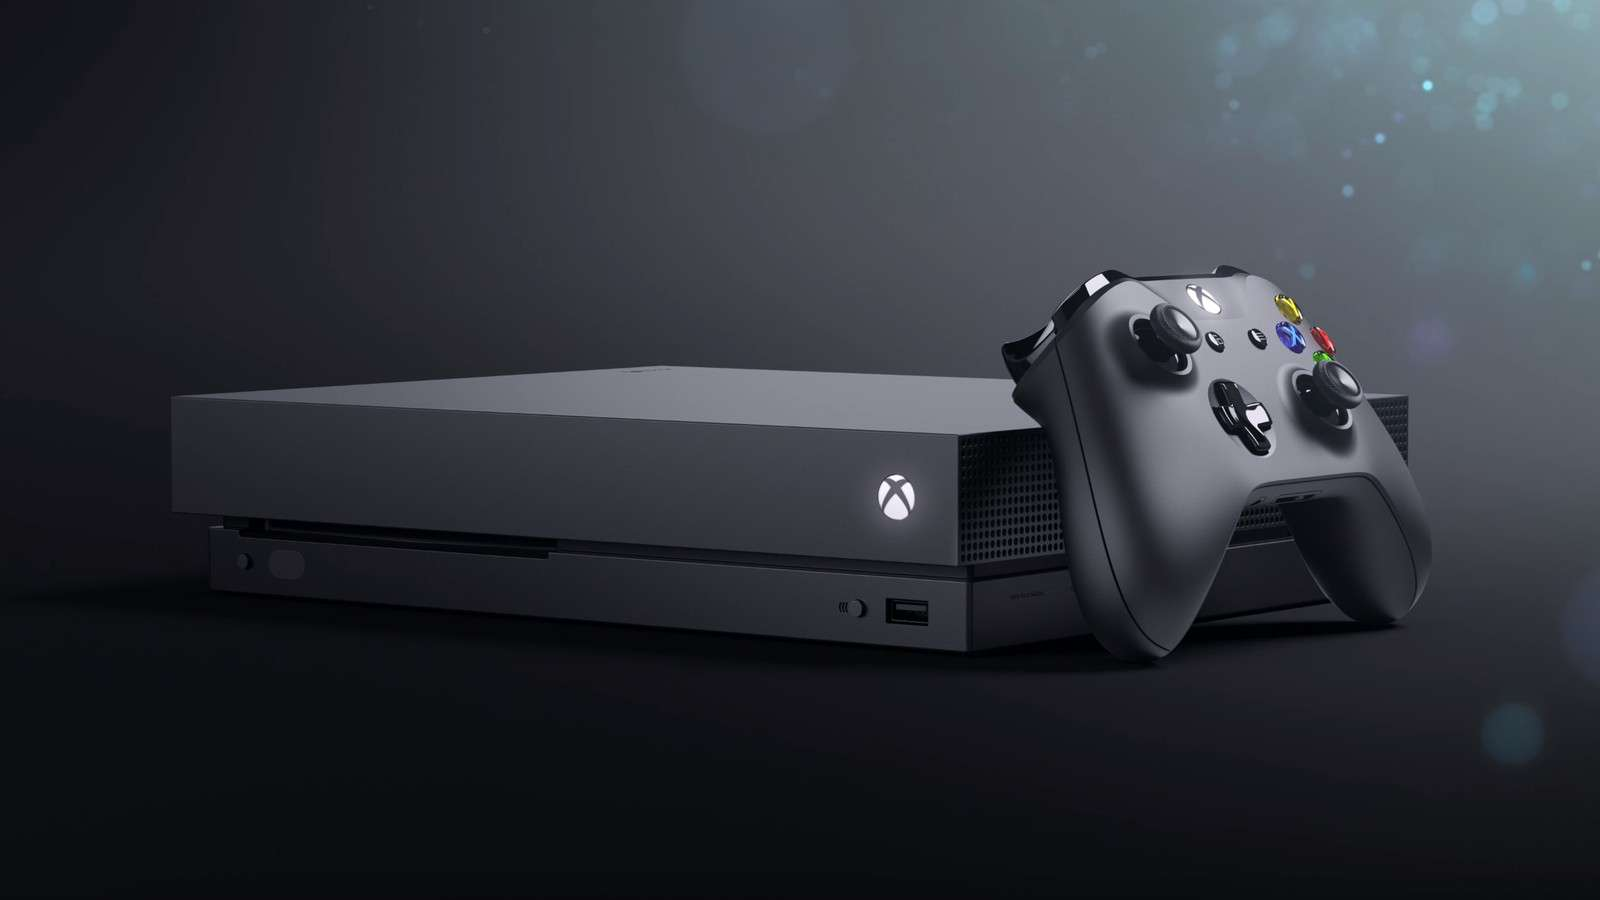 Xbox One X e Xbox One S All-Digital sono ai saluti finali